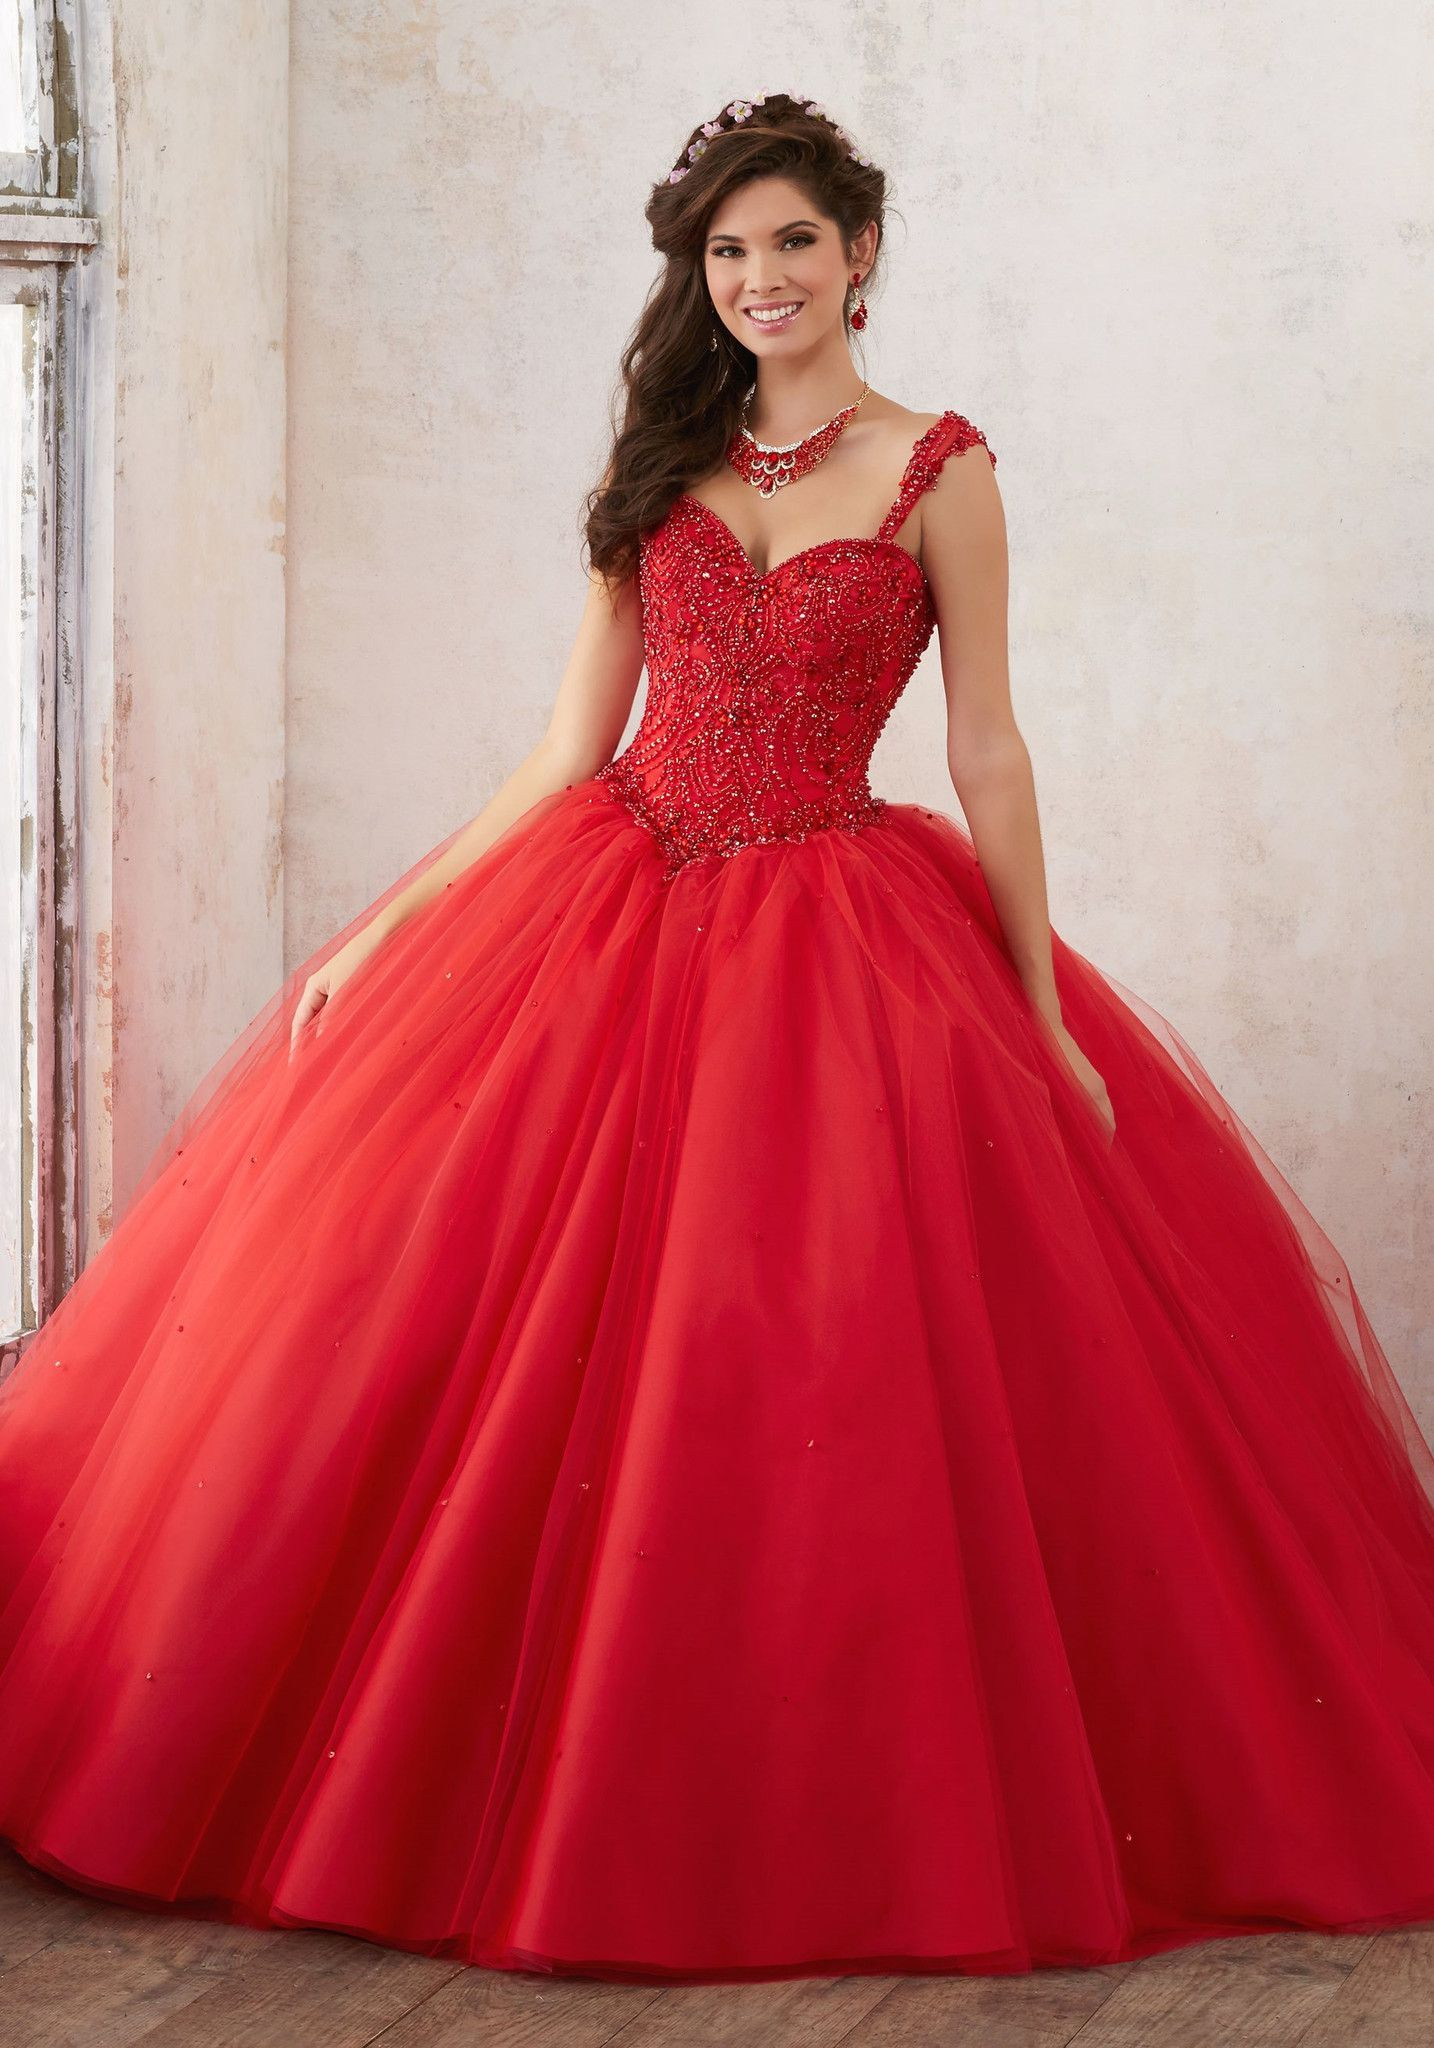 011ce5f853 Beaded Sweetheart Quinceanera Dress by Mori Lee Valencia 60018 ...